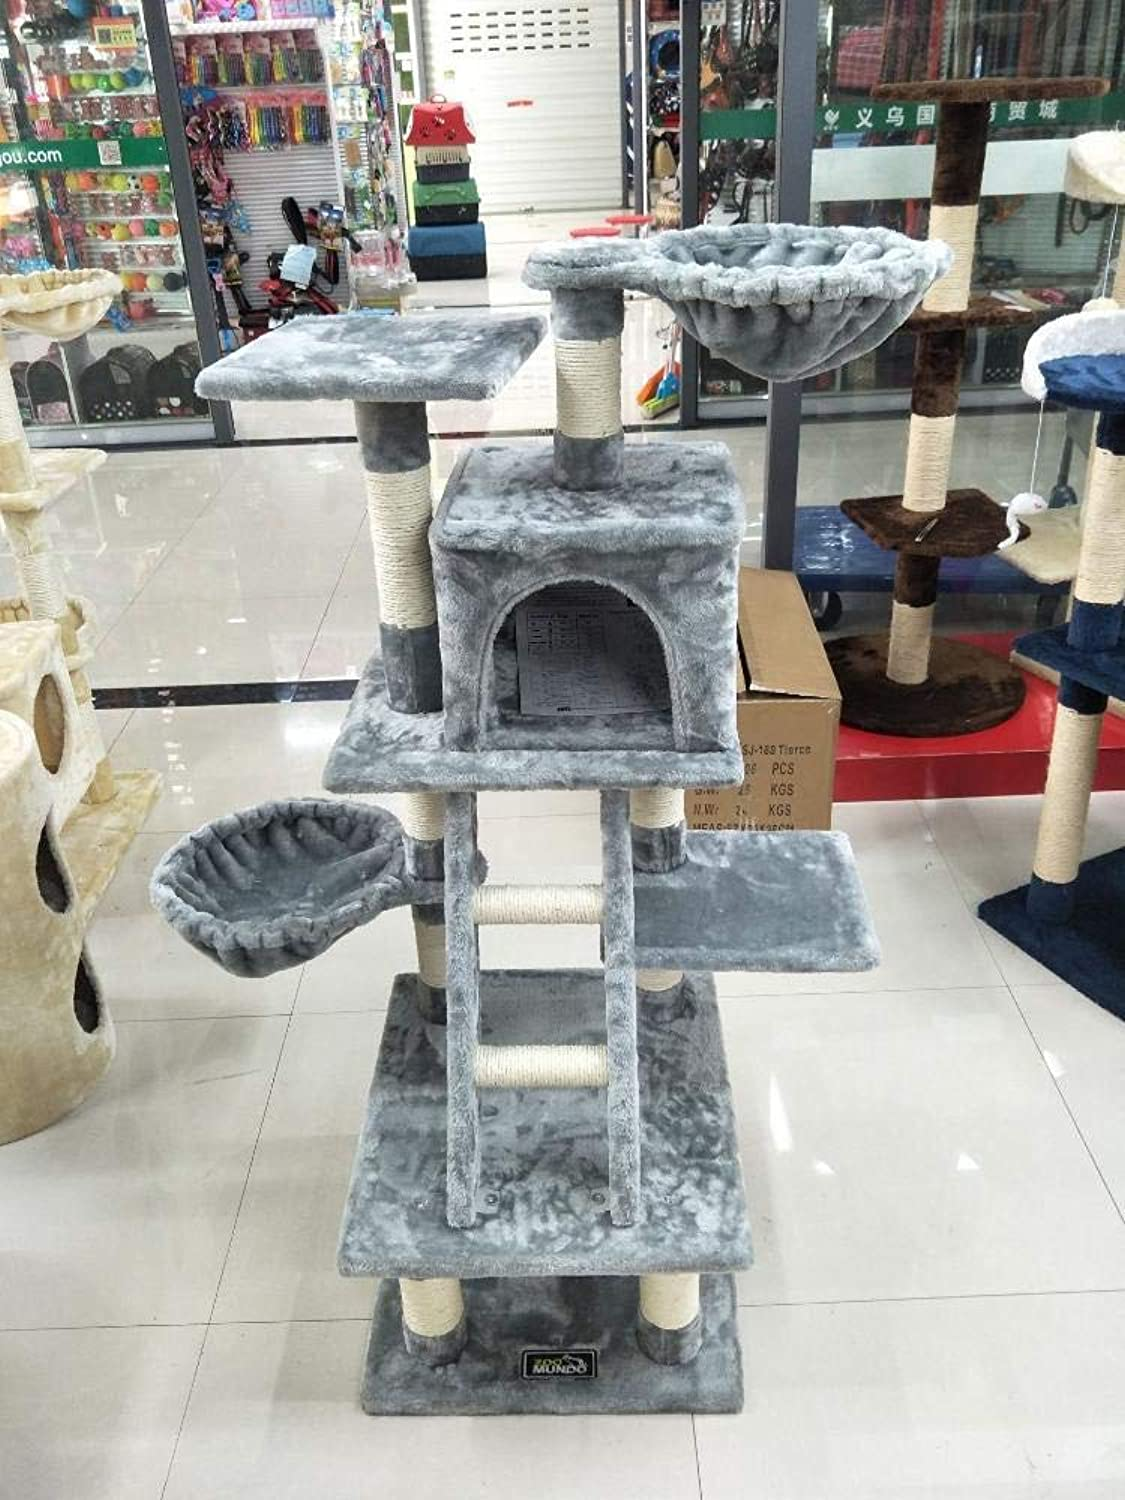 Axiba Play Towers Trees for Cats Cat Climb frame cat tree cat litter cat grab column for game sleeping 49cm 44cm  120cm